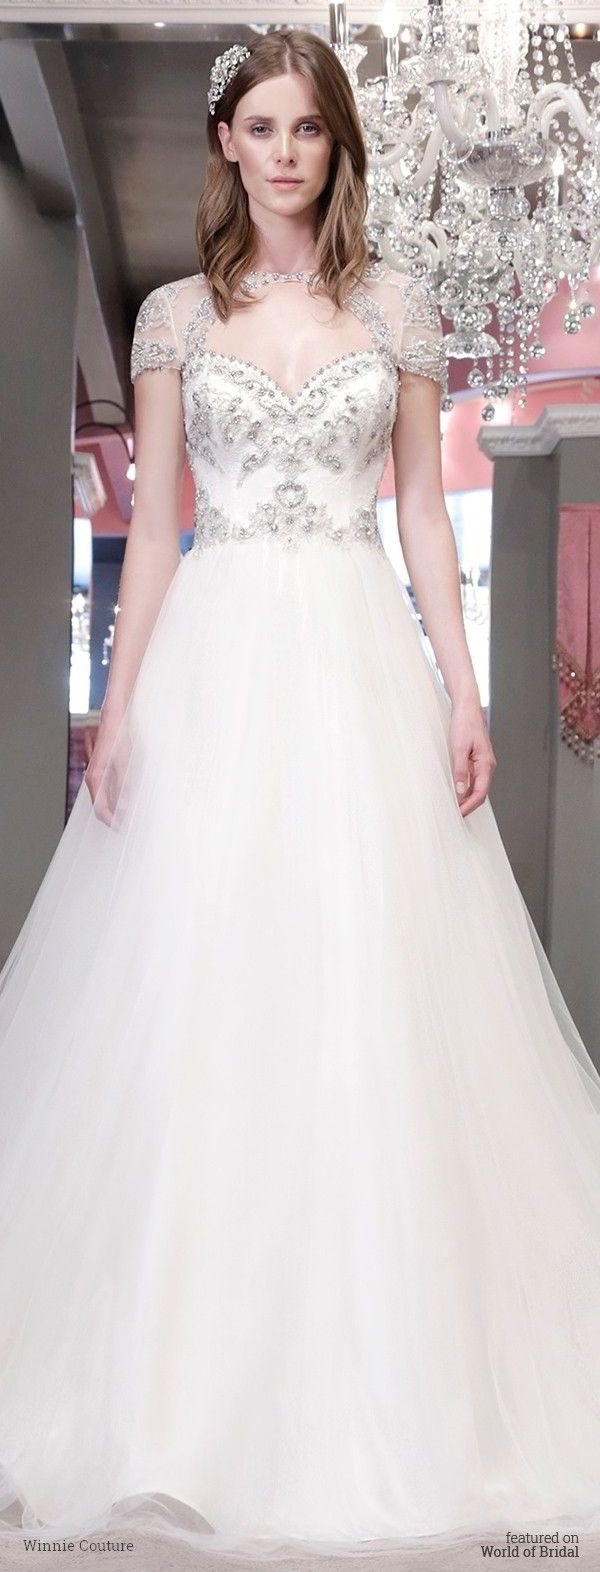 Decorative tulle fit and flare with crystal pattern lines on bodice and skirt, lace cut out under bust with crystal straps to exposed open back